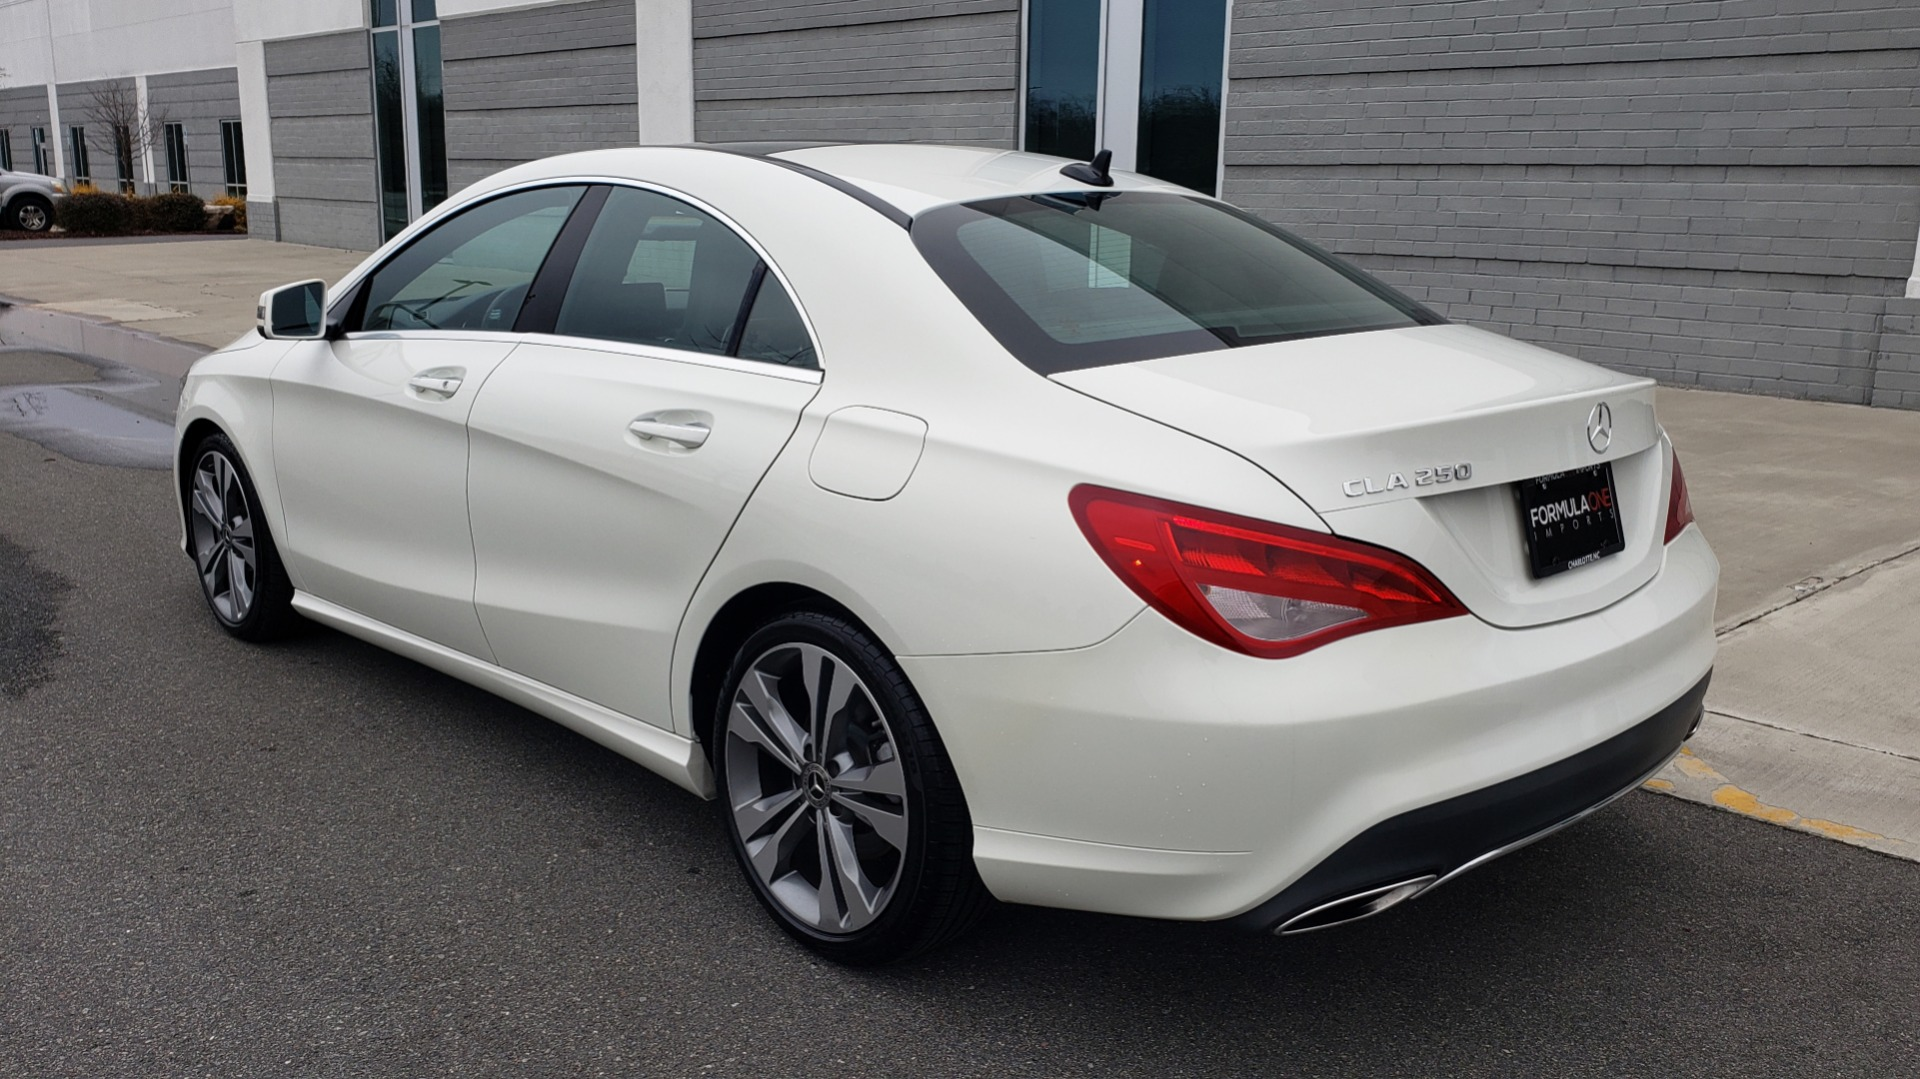 Used 2018 Mercedes-Benz CLA 250 PREMIUM / NAV / PANO-ROOF / APPLE CARPLAY / REARVIEW for sale $23,995 at Formula Imports in Charlotte NC 28227 5